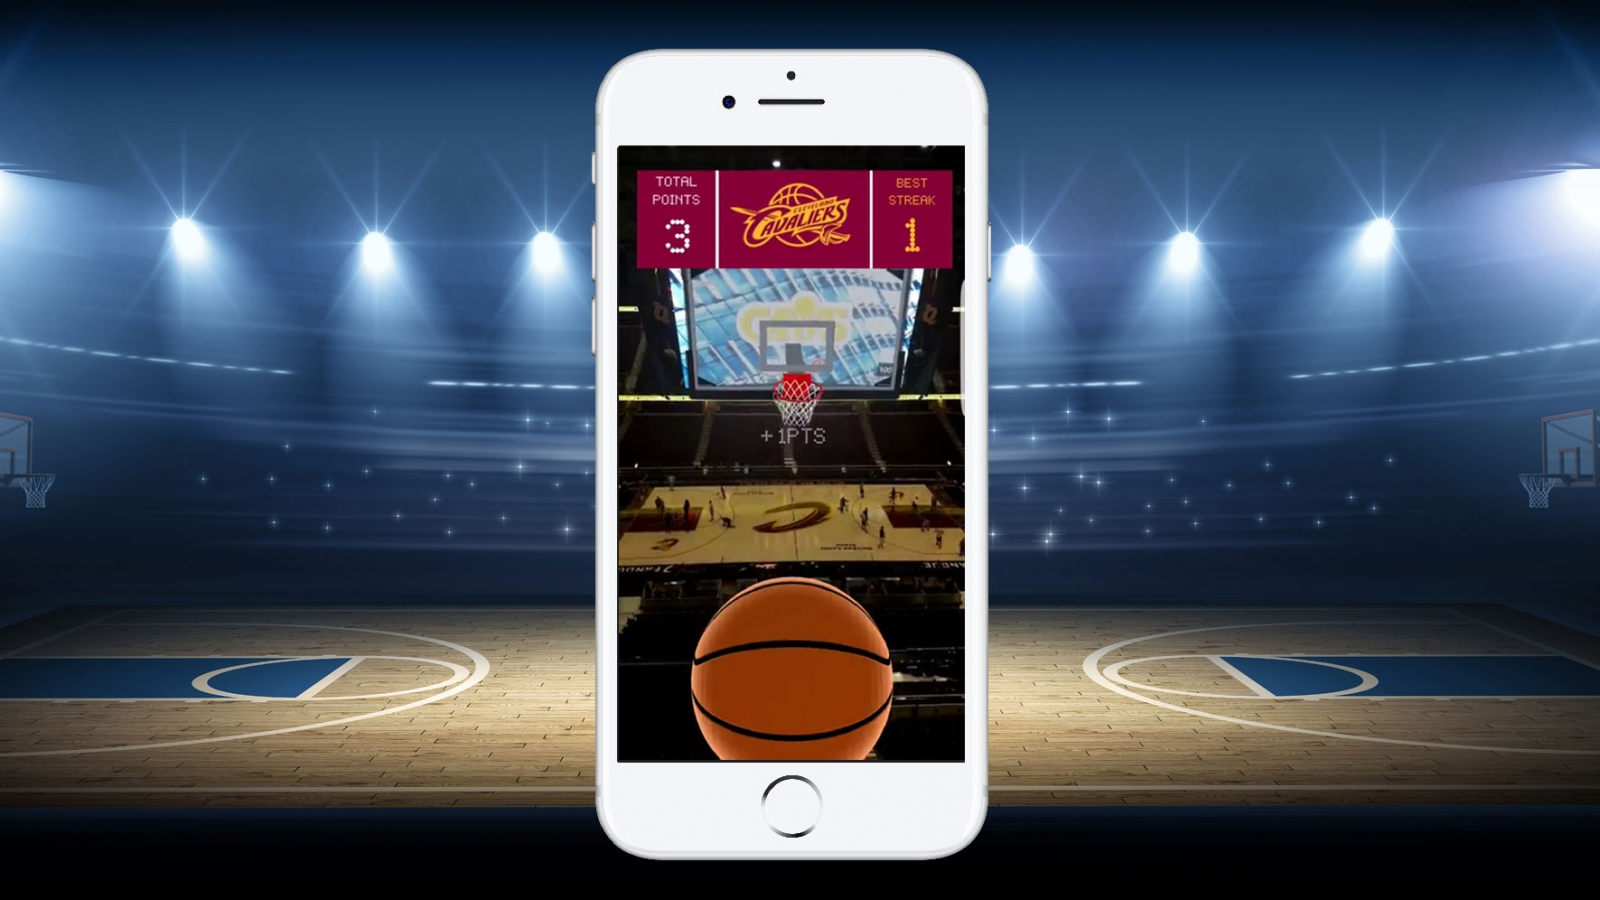 Cleveland Cavaliers' Deep in the Q app